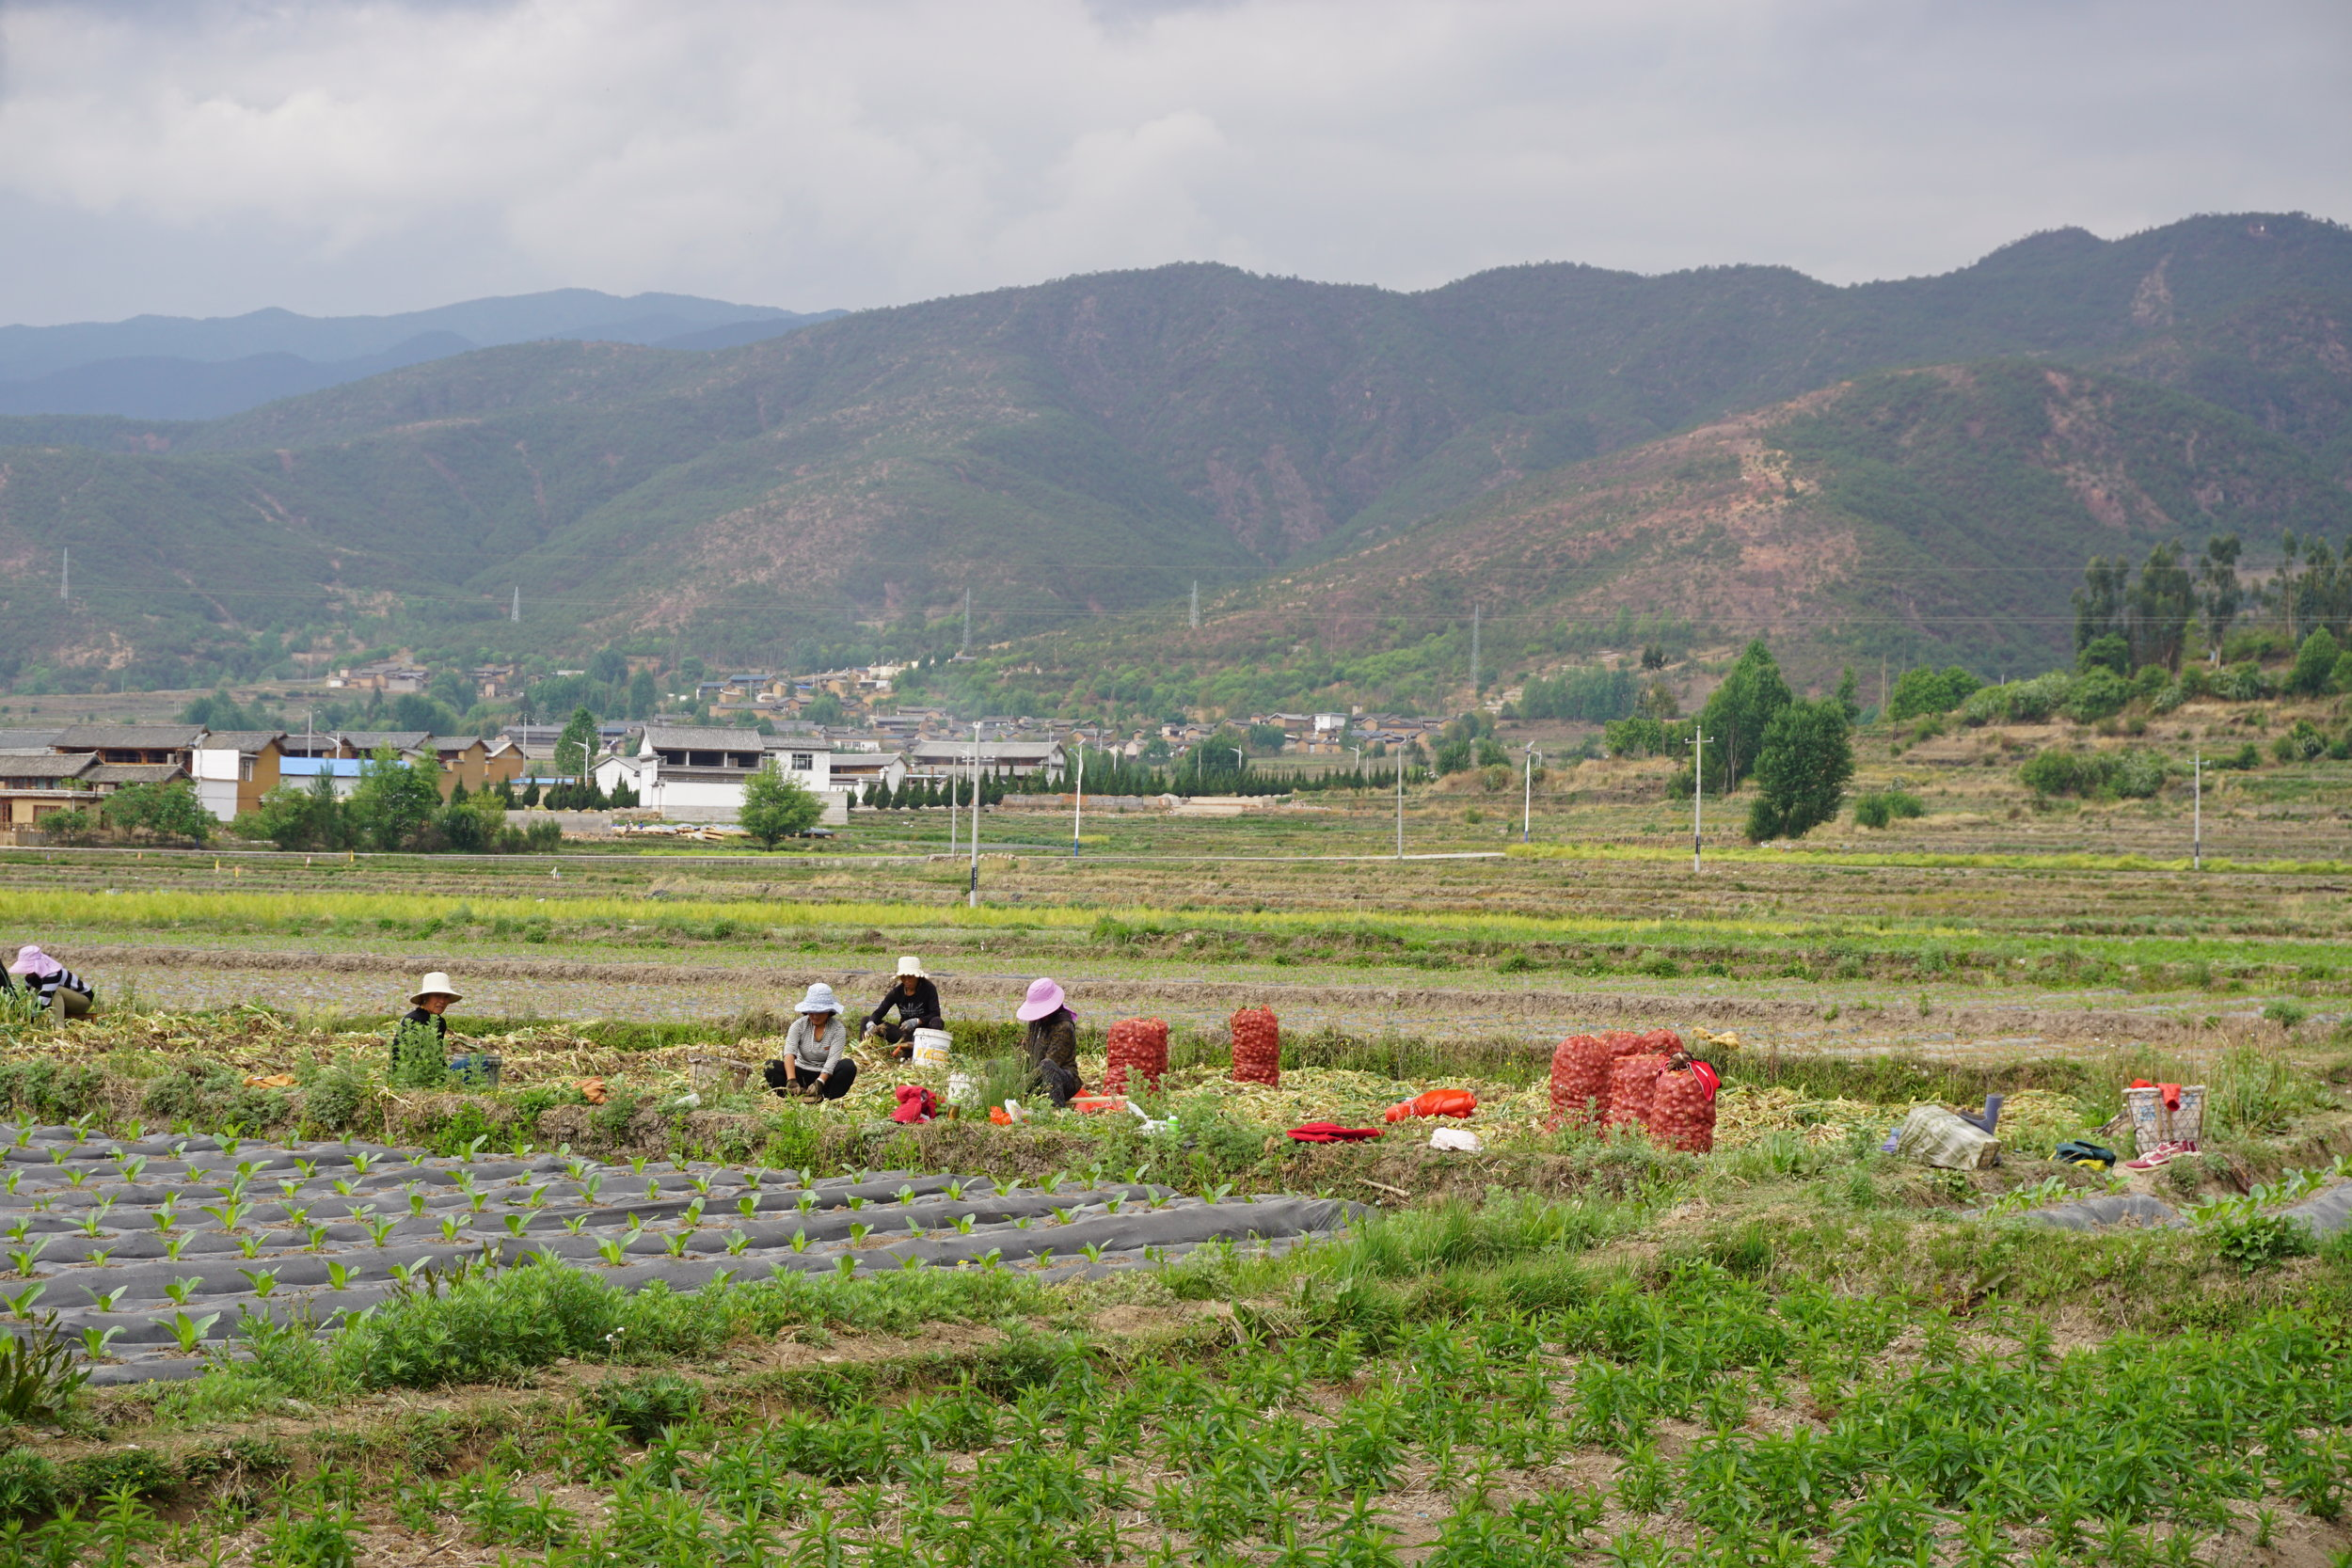 with china's food safety scandals, many families opt to grow their own food